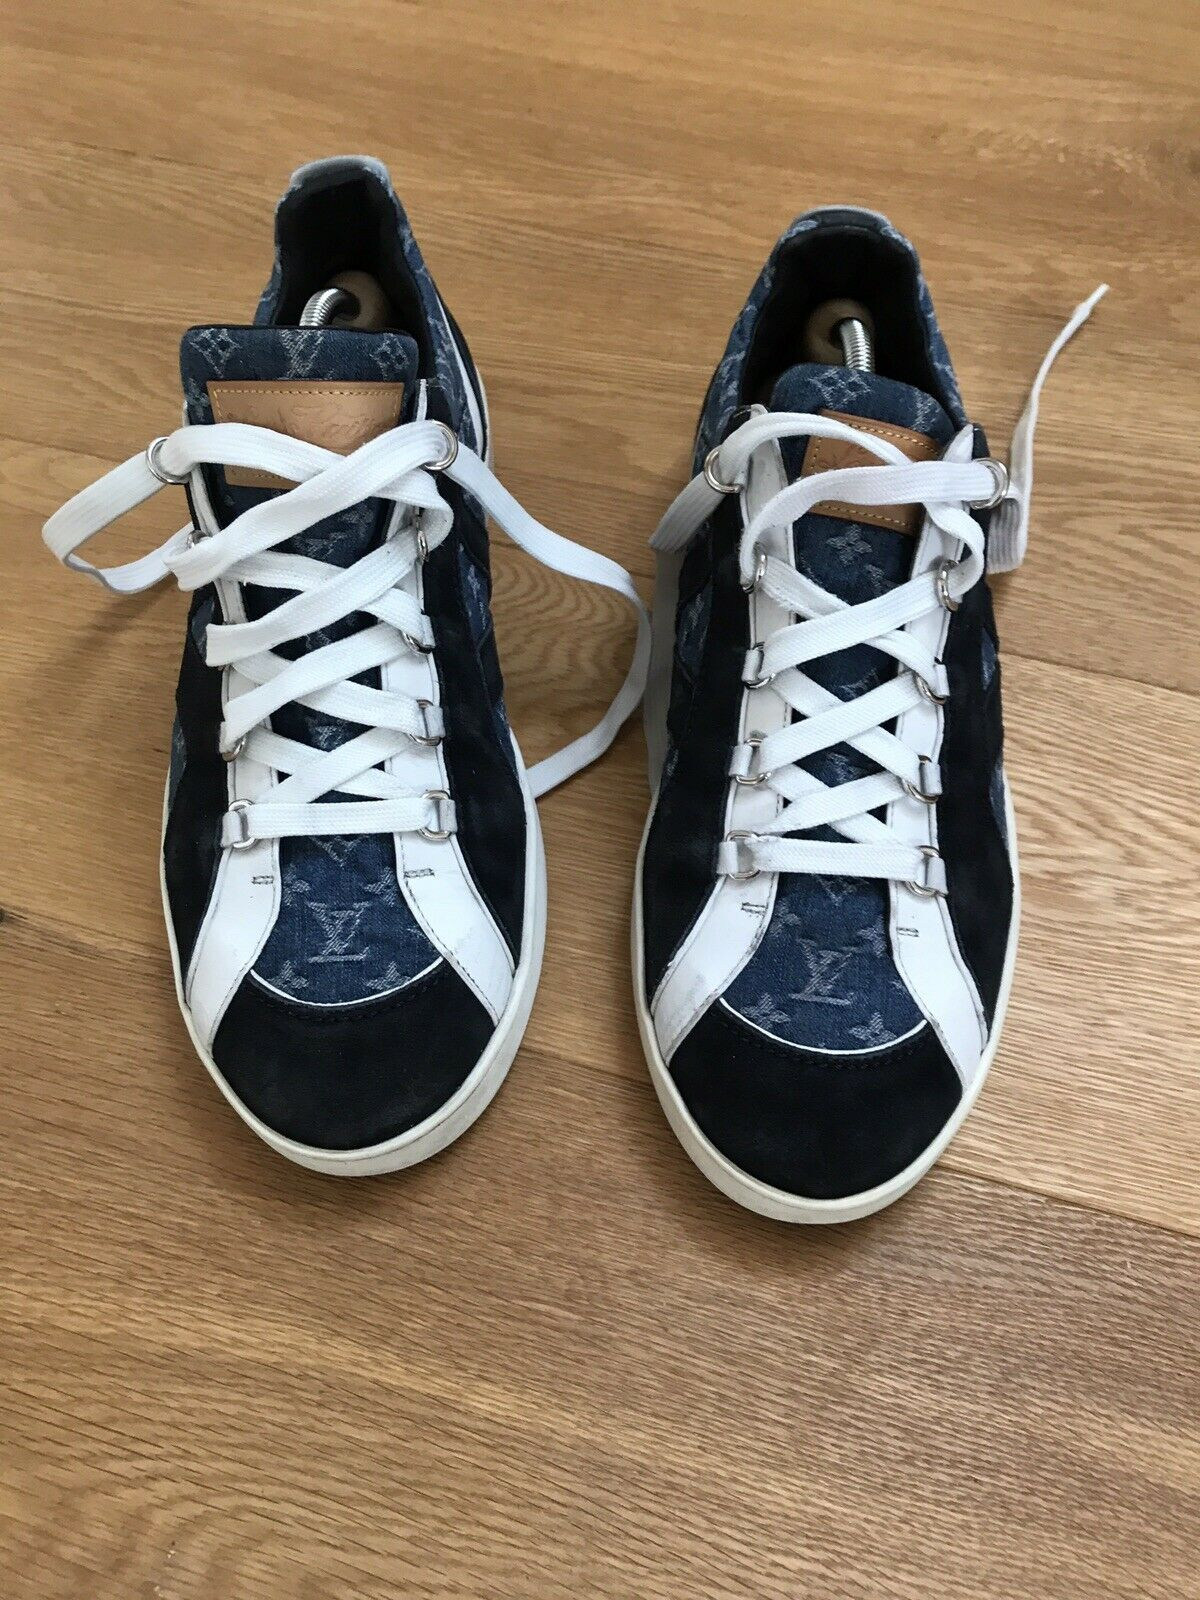 Original louis vuitton Herren Sneaker in Grösse 9,5! - 200.00,Kaufpreis 200,datum 26.07.2020 04:14:40,Website